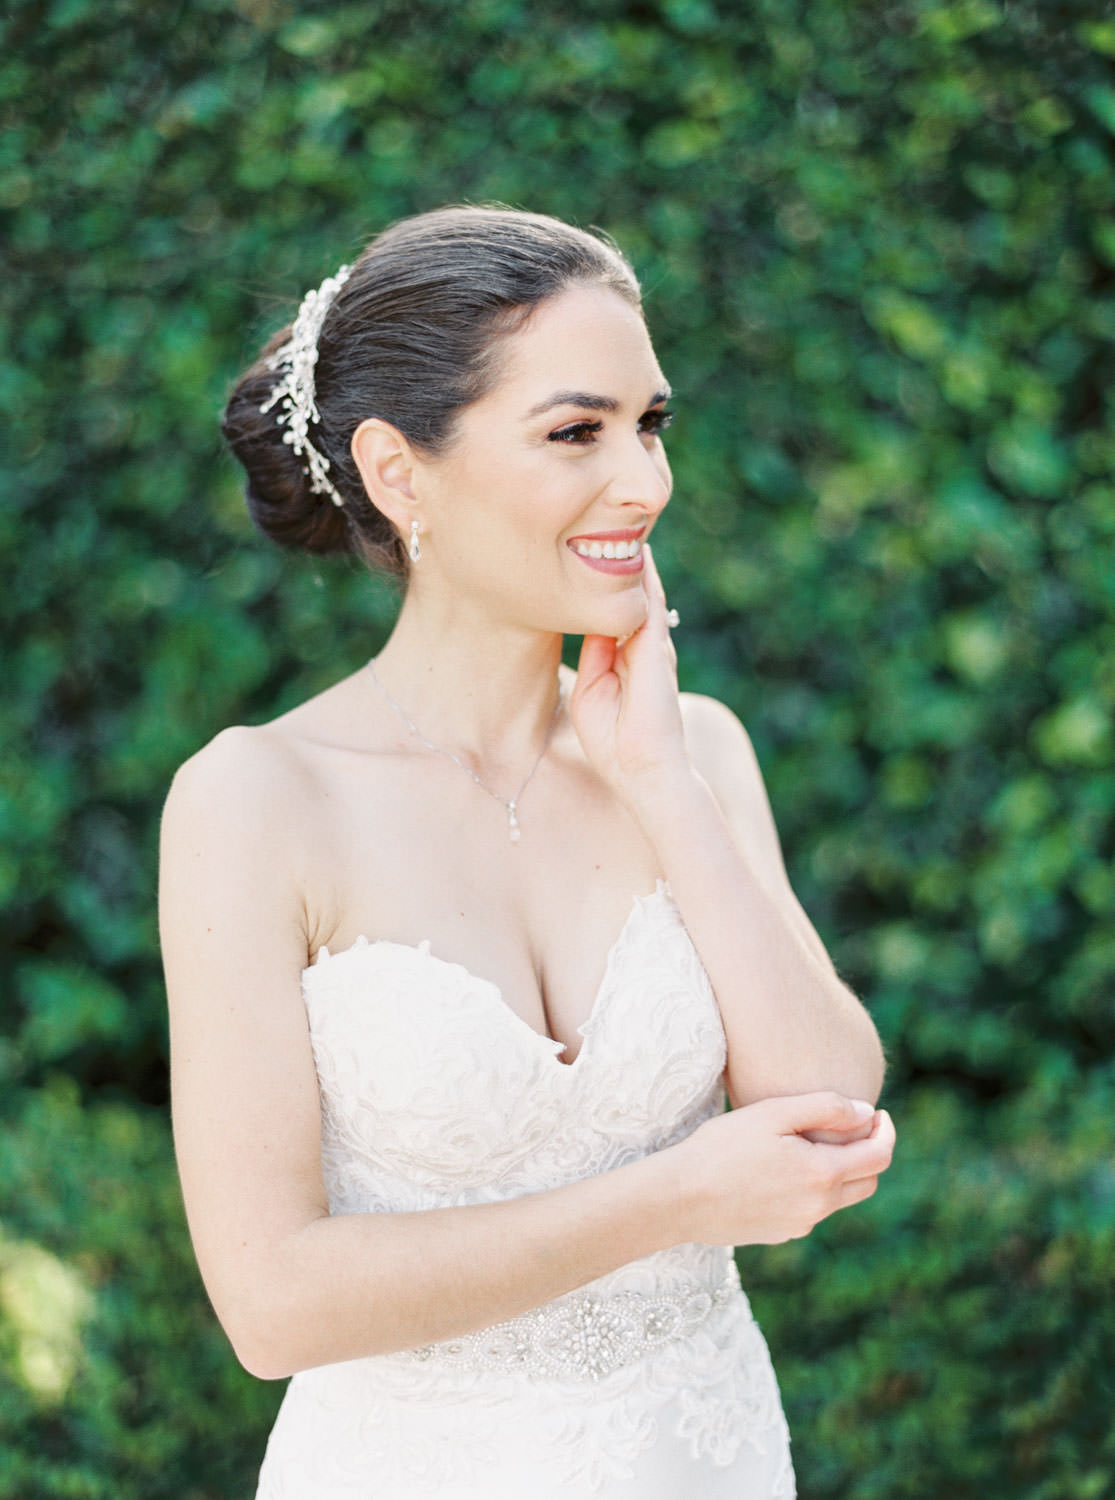 Bride captured on film in front of an ivy covered wall, Santaluz Club wedding reception, Cavin Elizabeth Photography